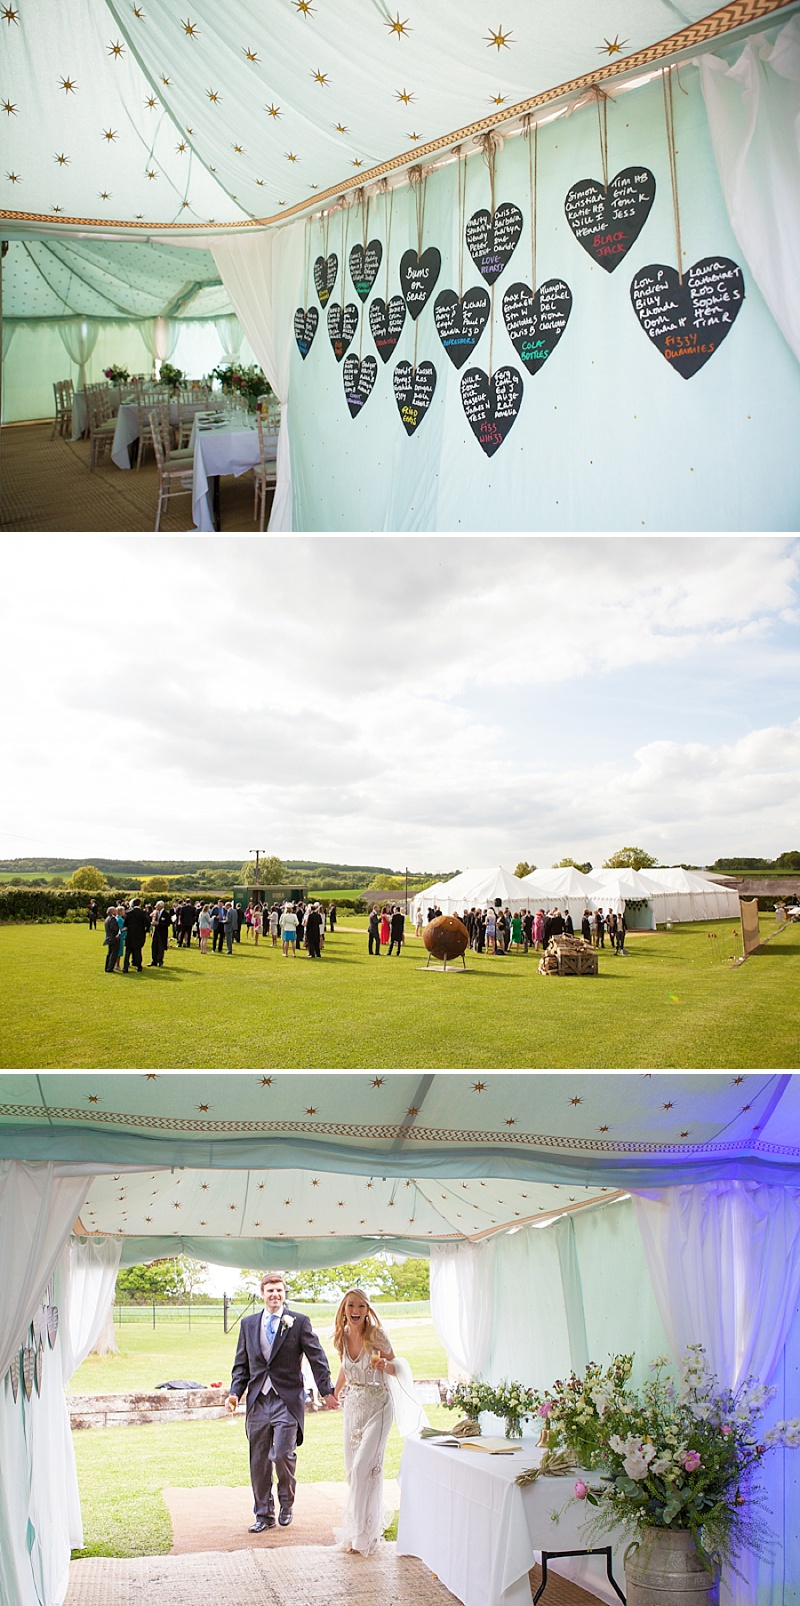 Summer Garden Party Wedding In Hertfordshire Bride In Jenny Packham Eden Gown Images by Annamarie Stepney 0012 Champagne In The Sunshine.